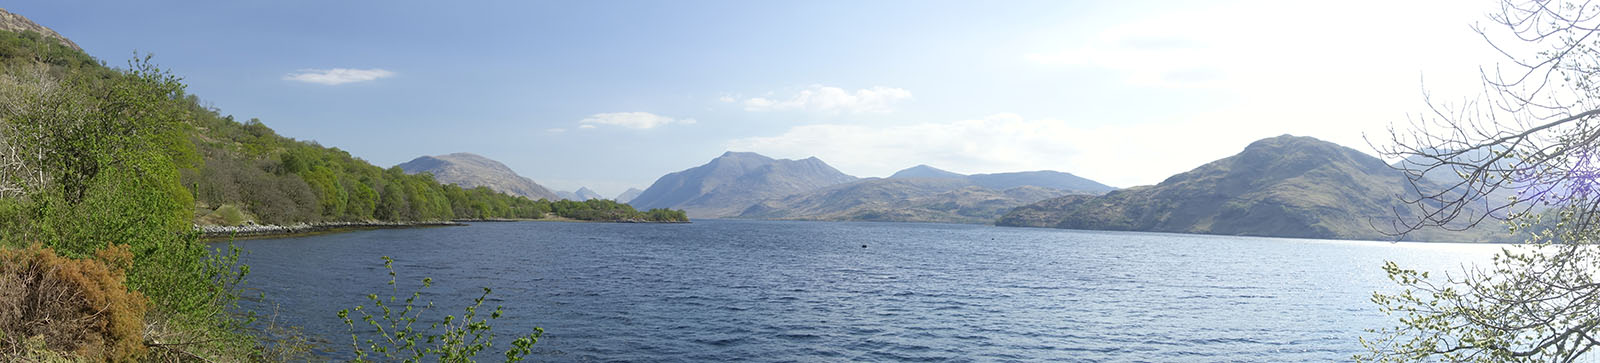 view up loch etive from craig